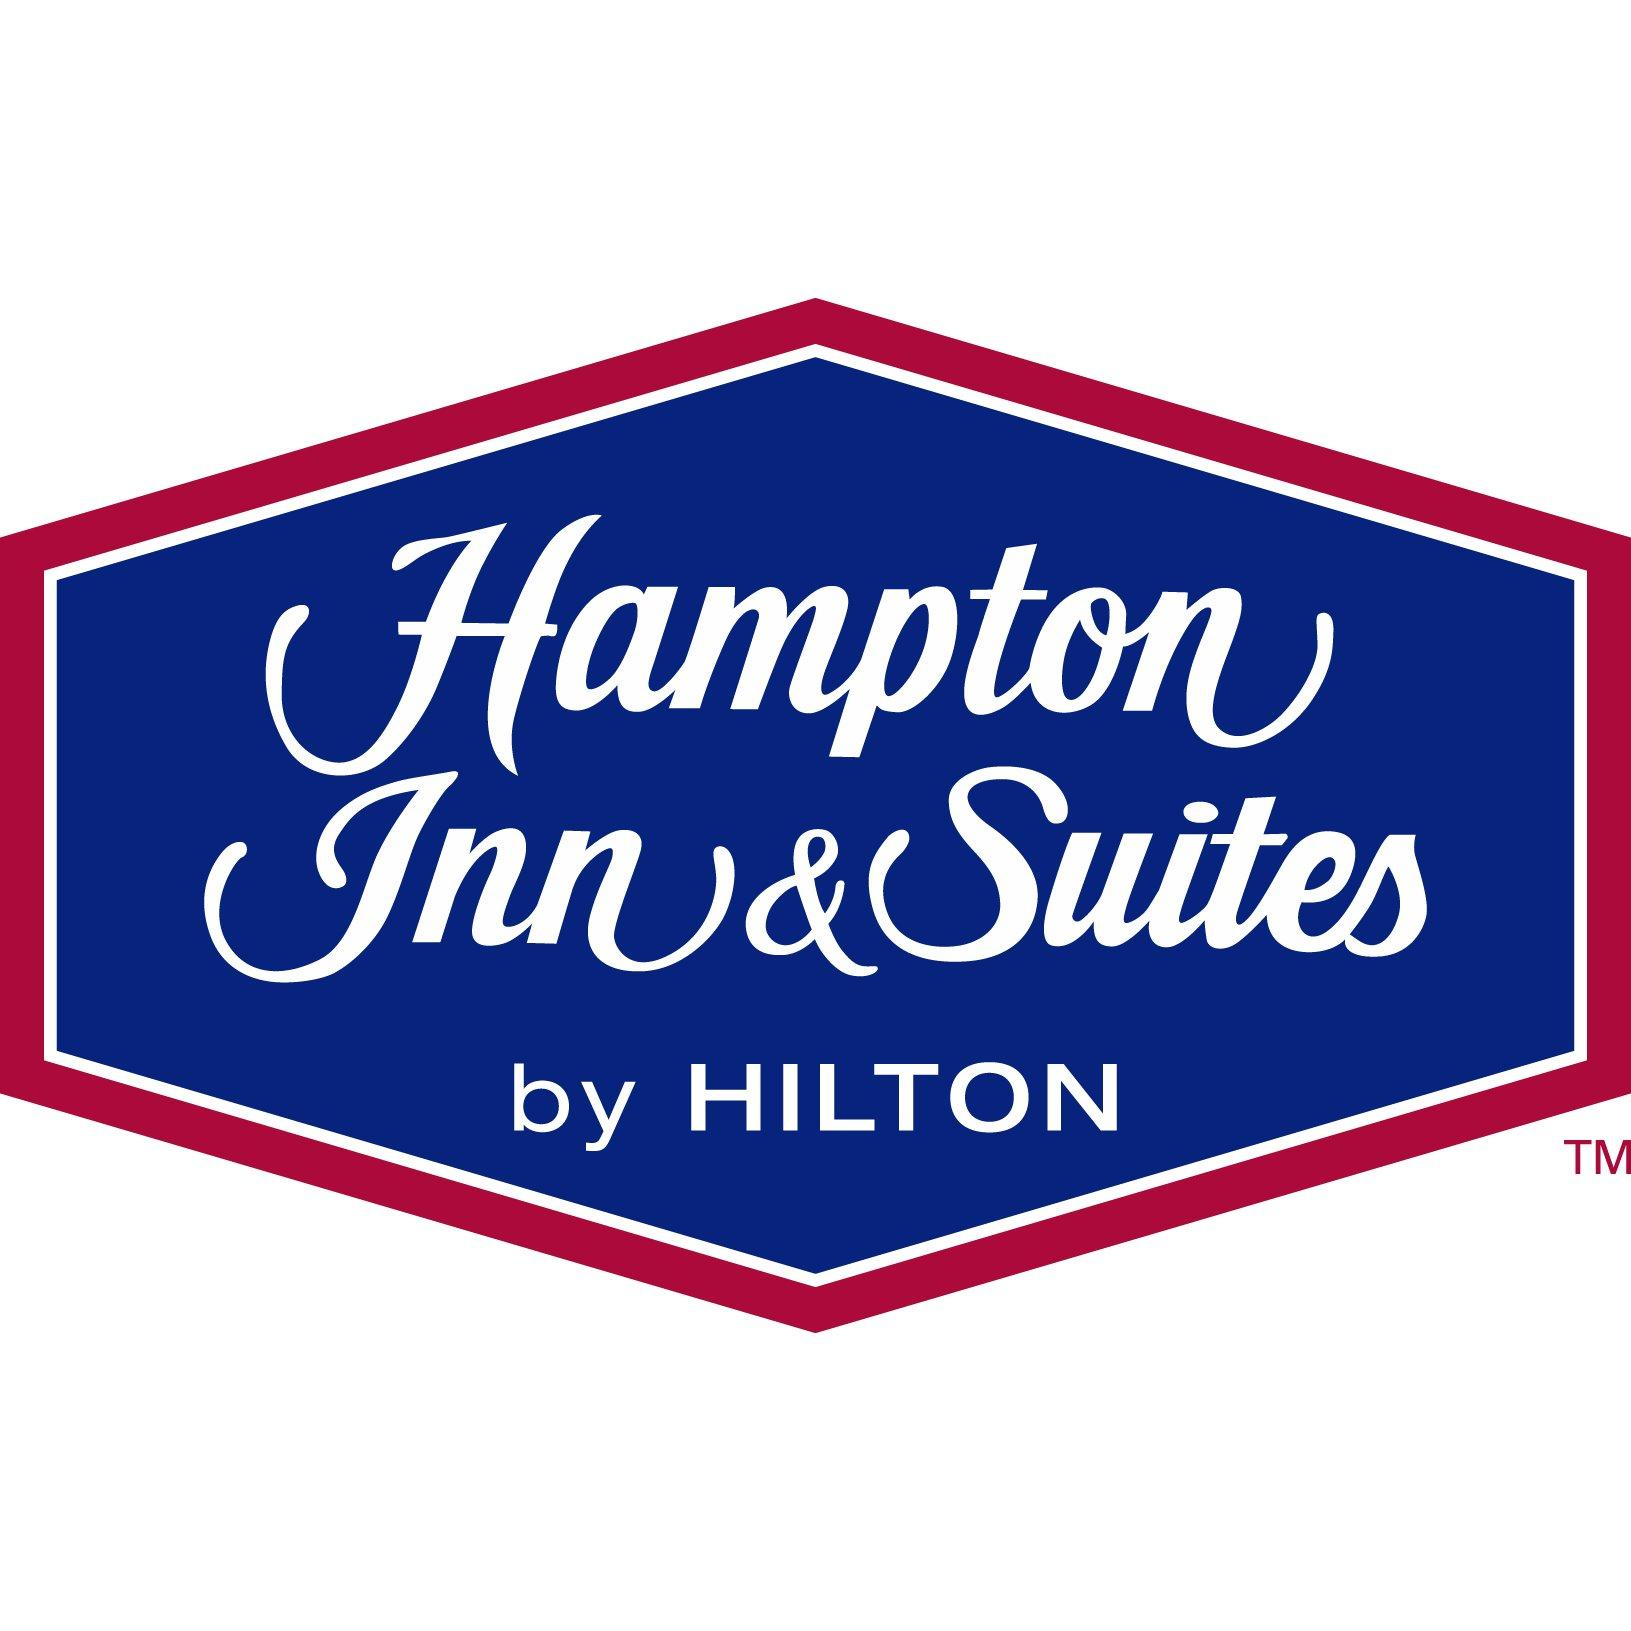 Hampton Inn and Suites Milwaukee West - West Allis, WI 53214 - (414)436-2300   ShowMeLocal.com